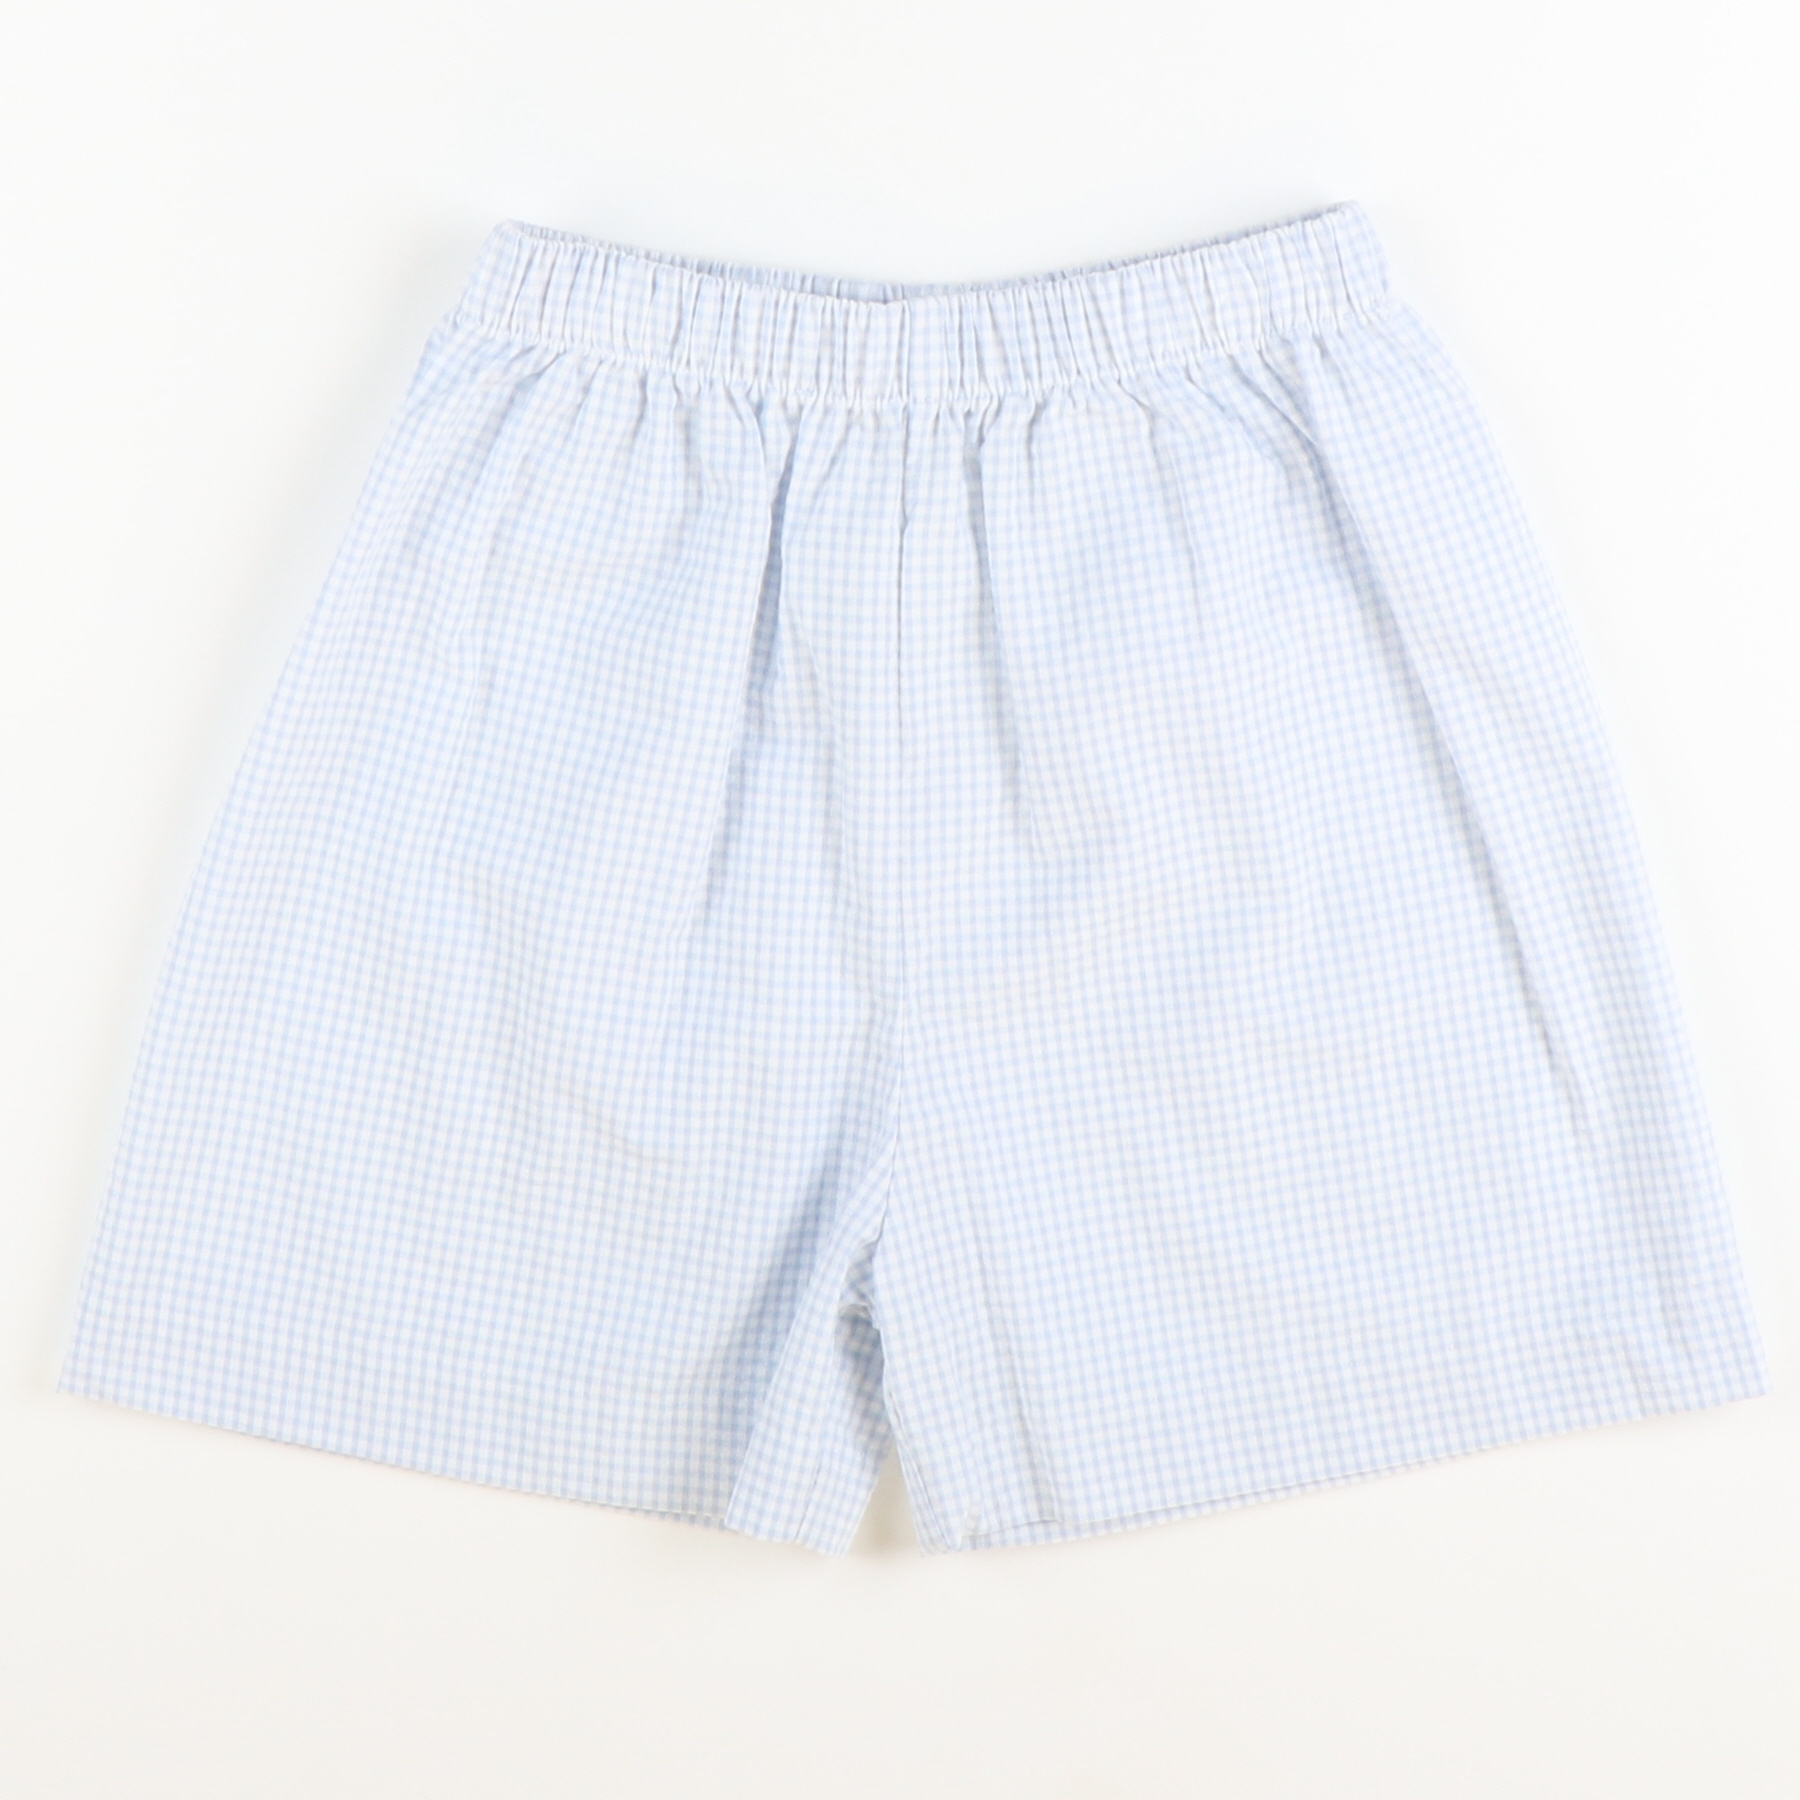 Signature Shorts - Light Blue Mini Check Seersucker - Stellybelly